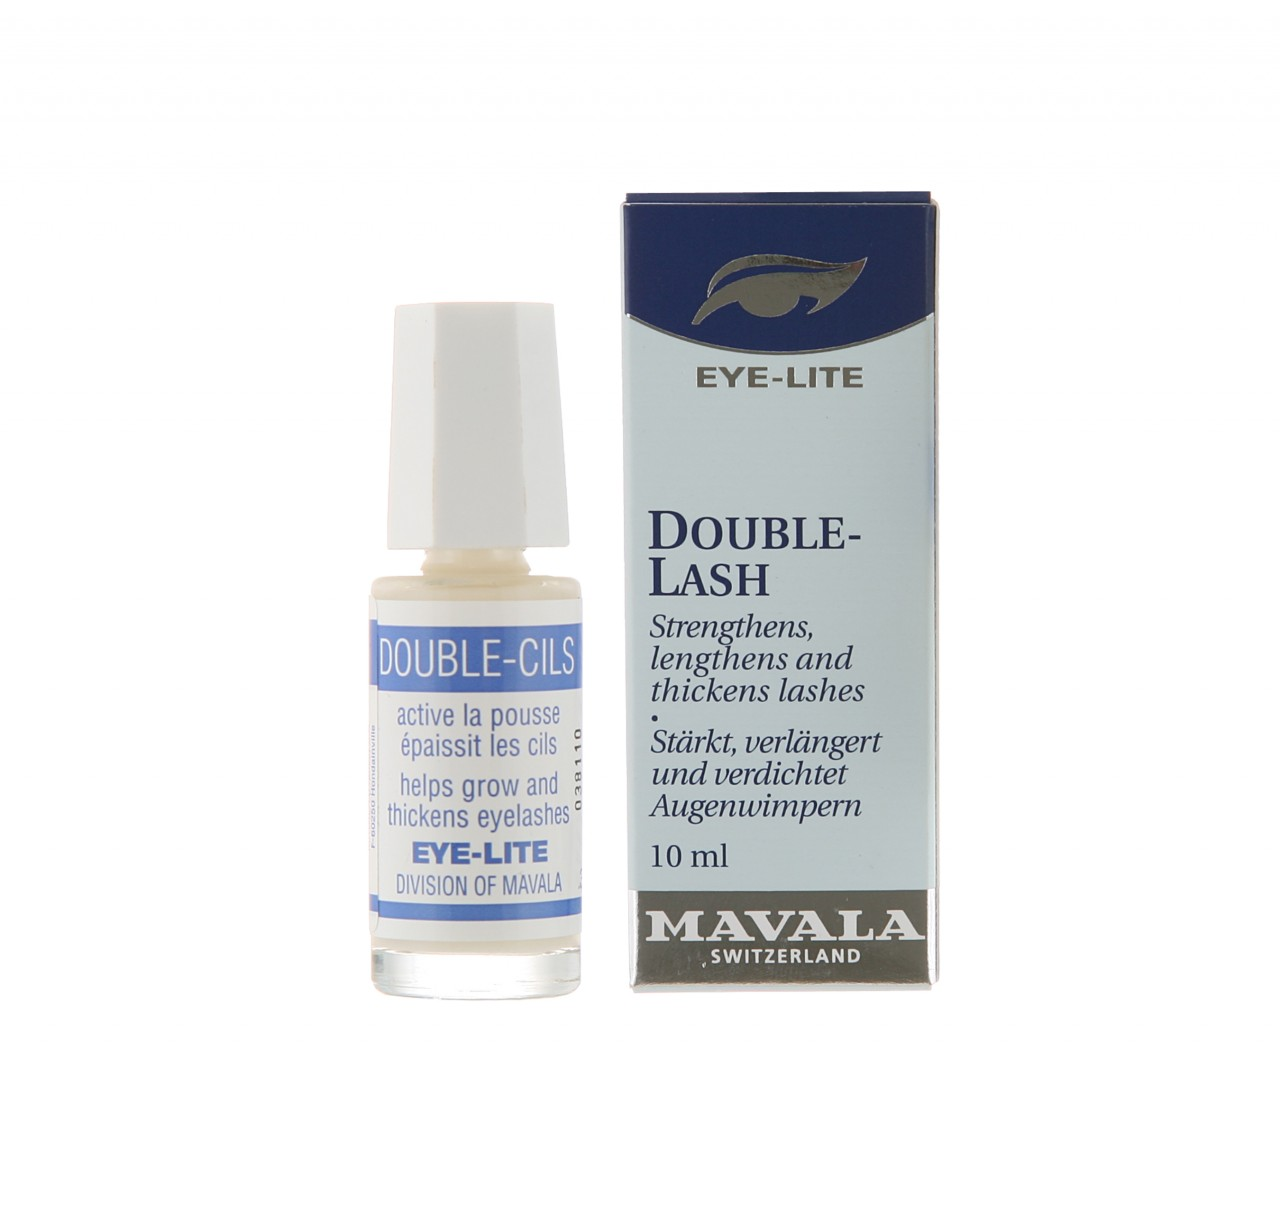 Mavala double lash product